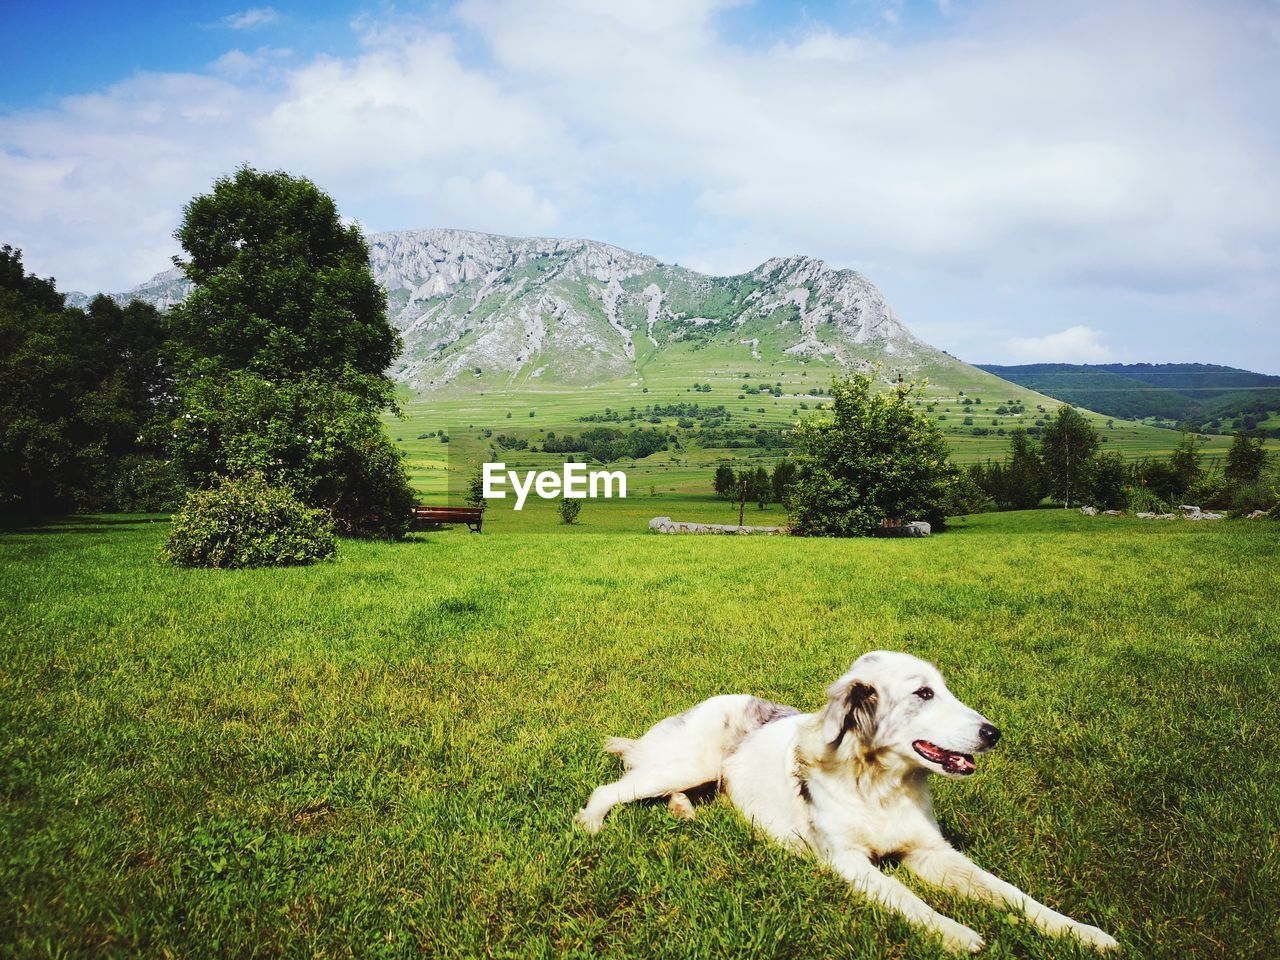 domestic, pets, domestic animals, mammal, one animal, plant, dog, animal themes, canine, animal, mountain, grass, vertebrate, cloud - sky, sky, tree, land, green color, beauty in nature, day, no people, mountain range, outdoors, mouth open